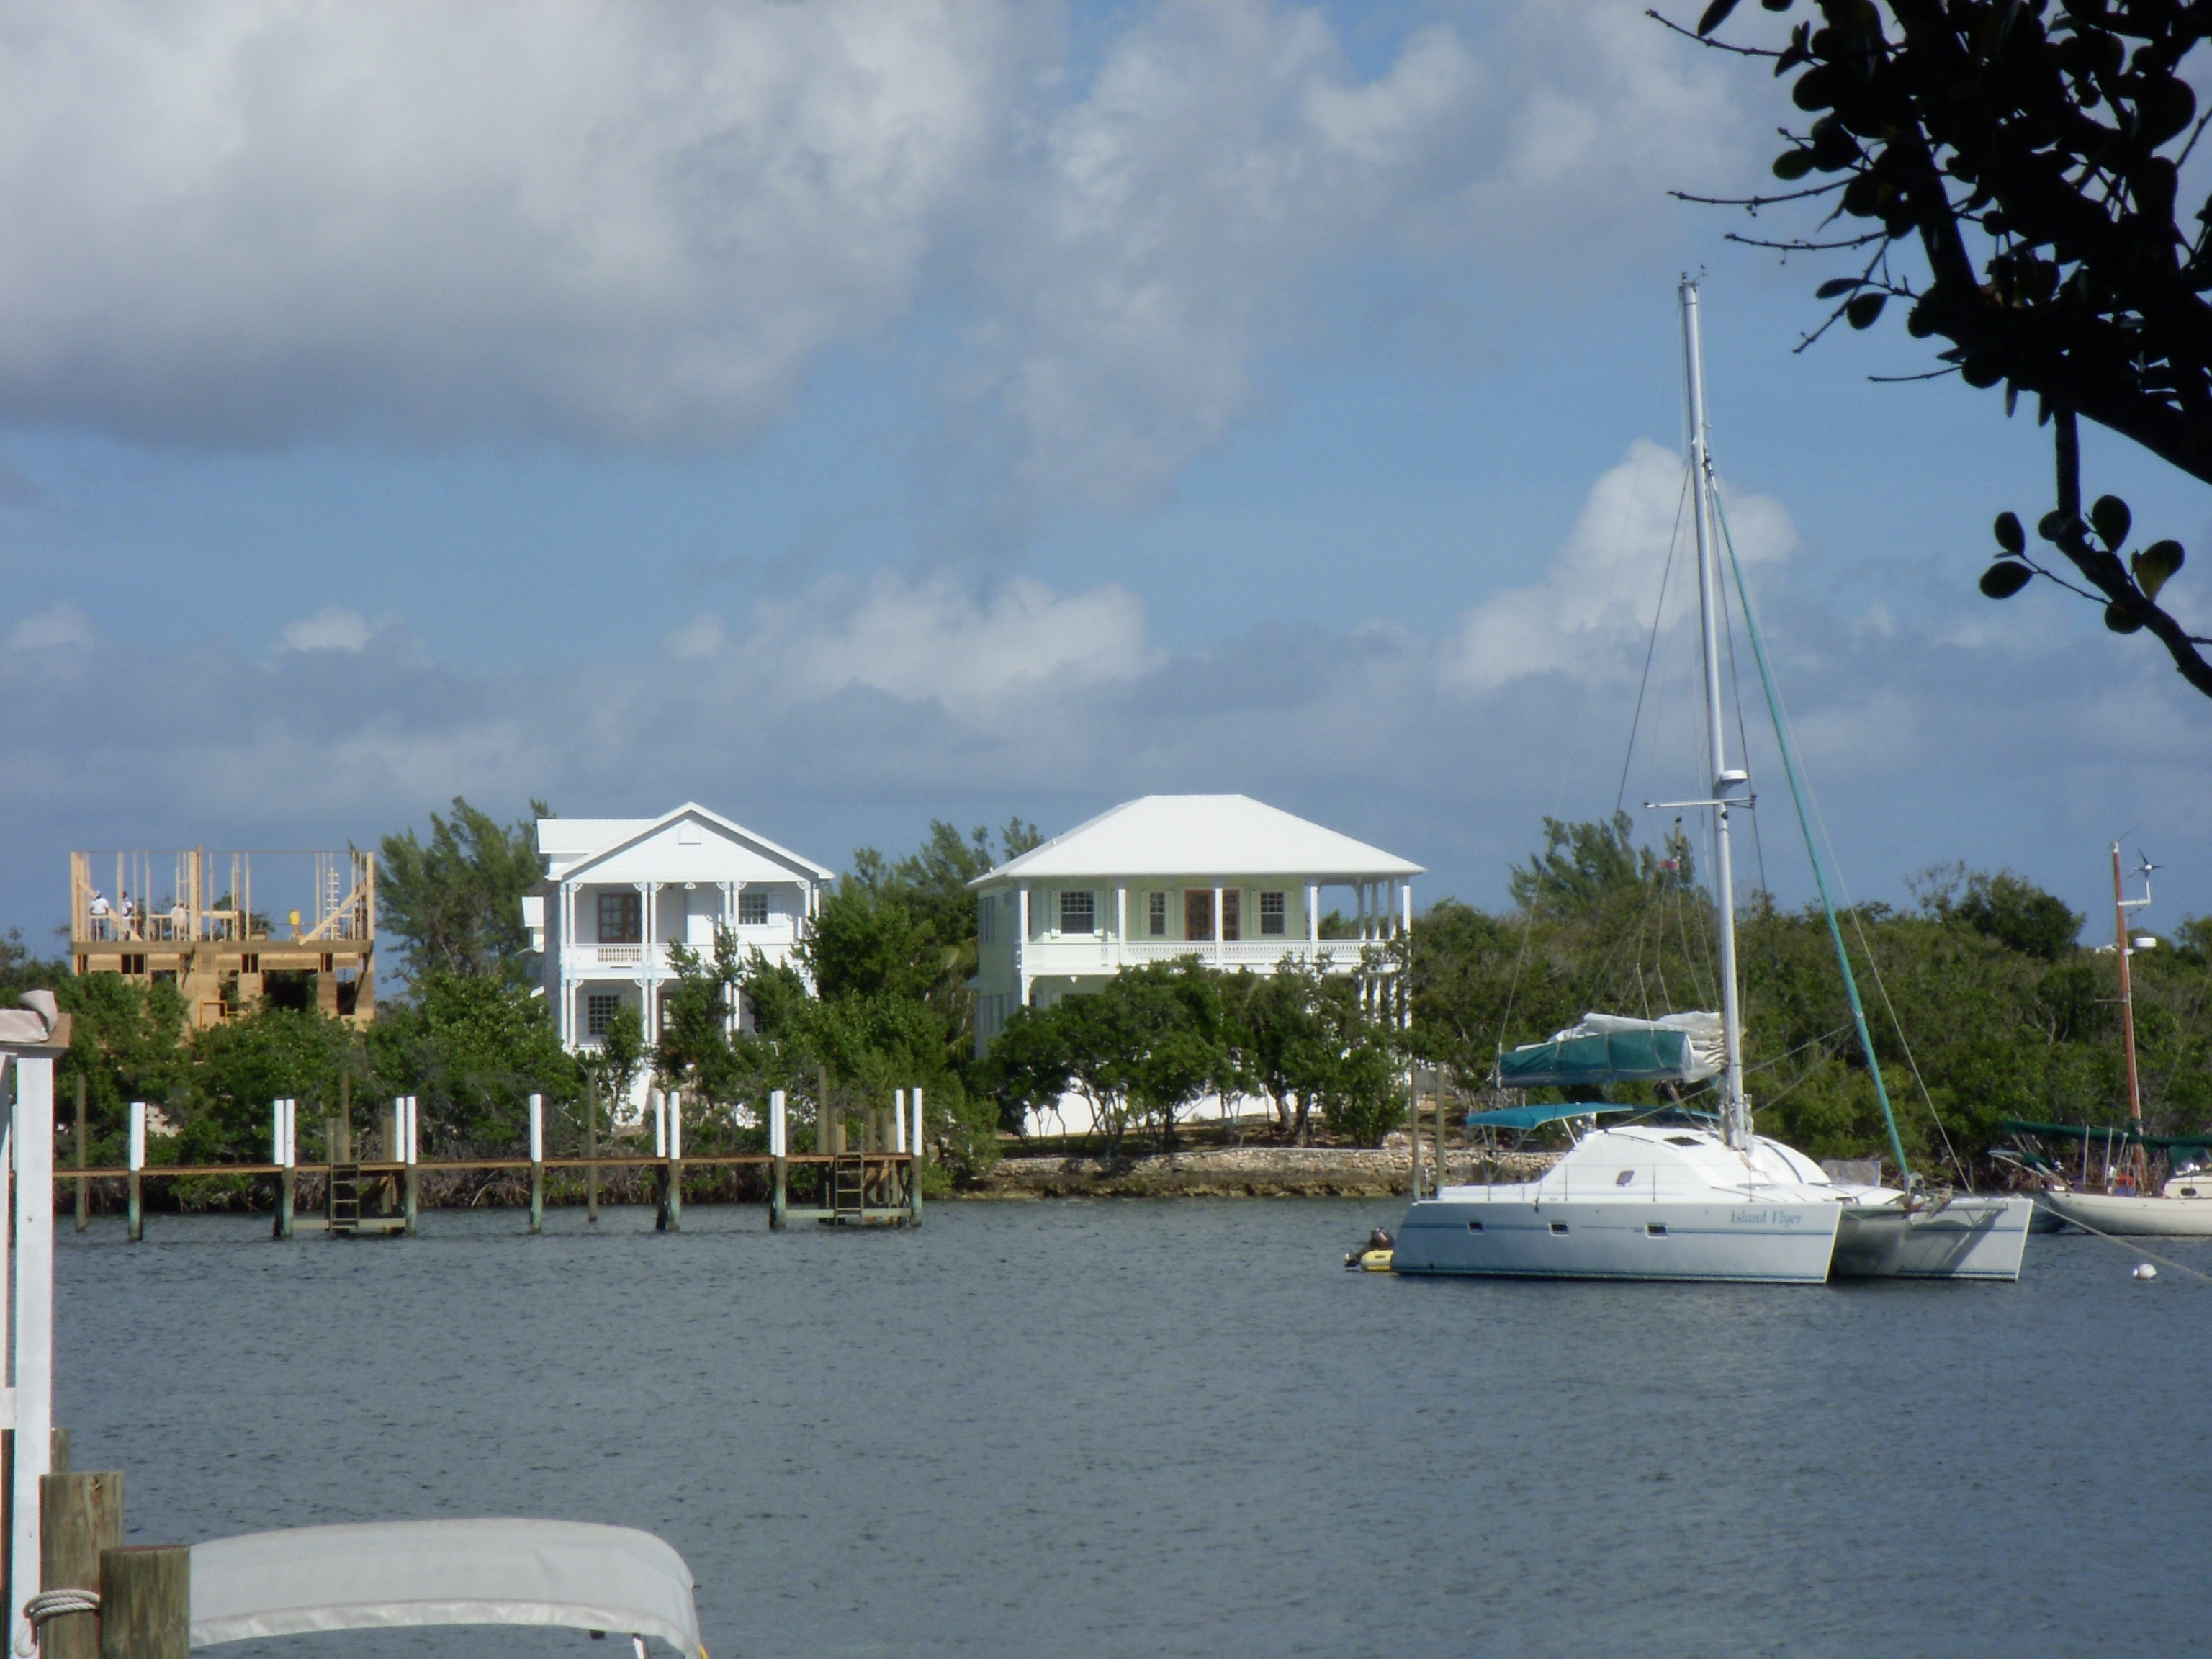 House rentals green turtle cay - Bye Green Turtle Cay We Had A Great Day